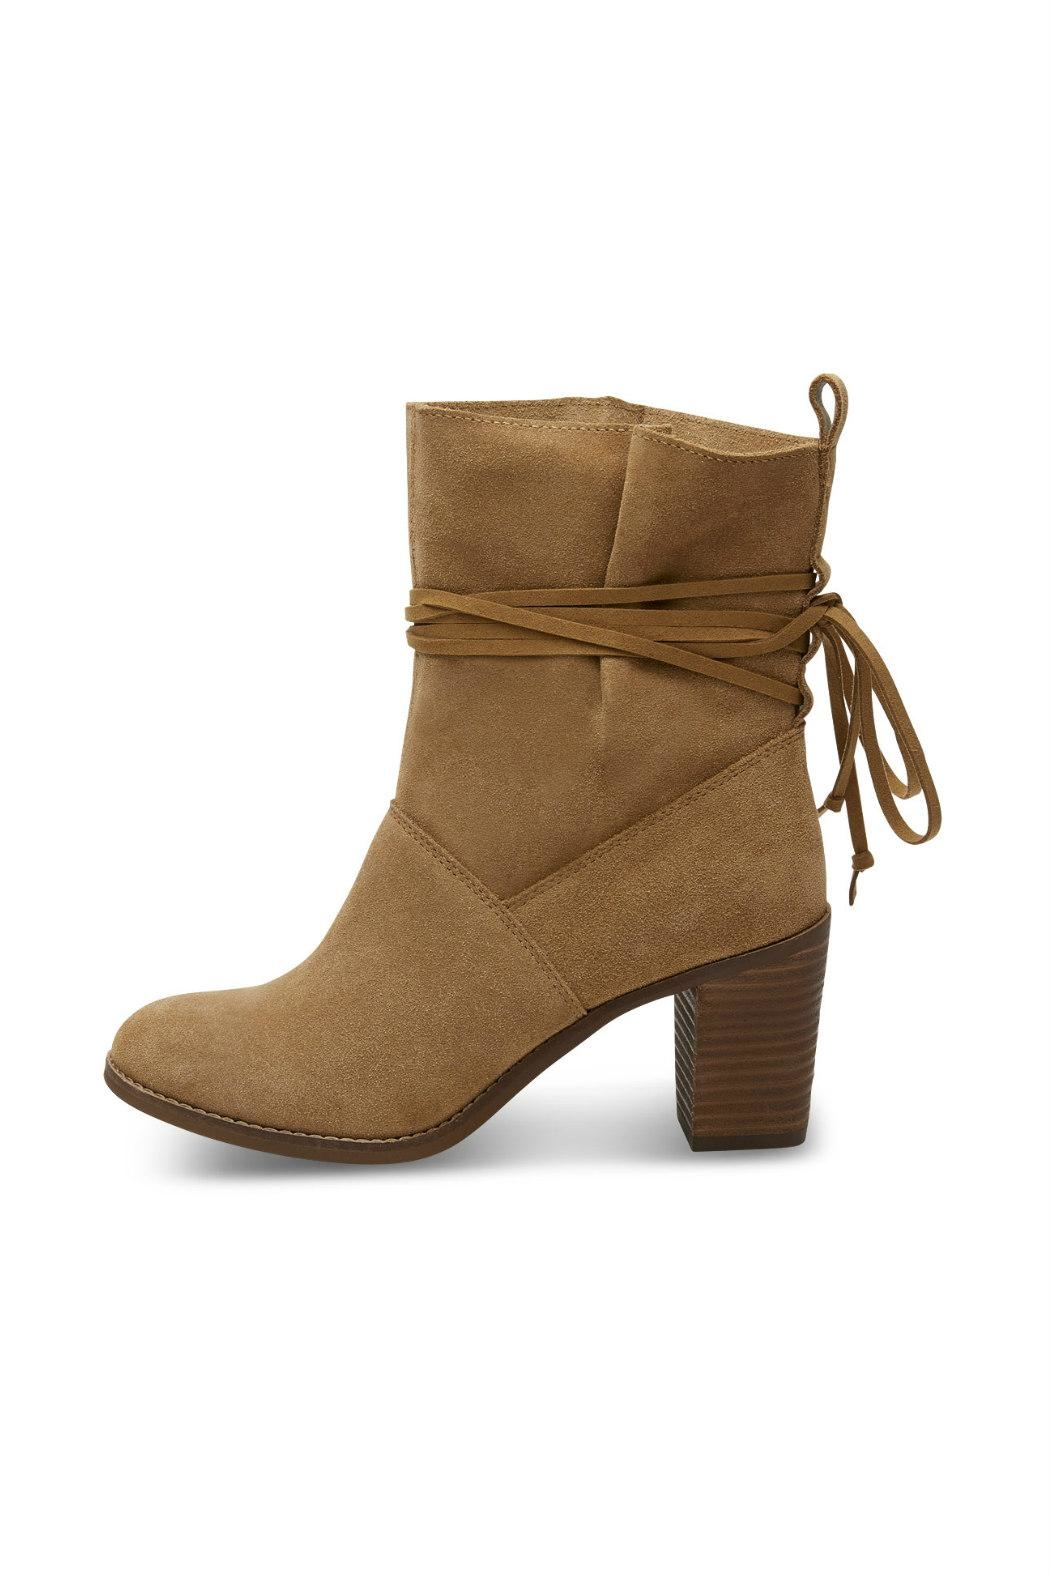 Suede Mila Boots